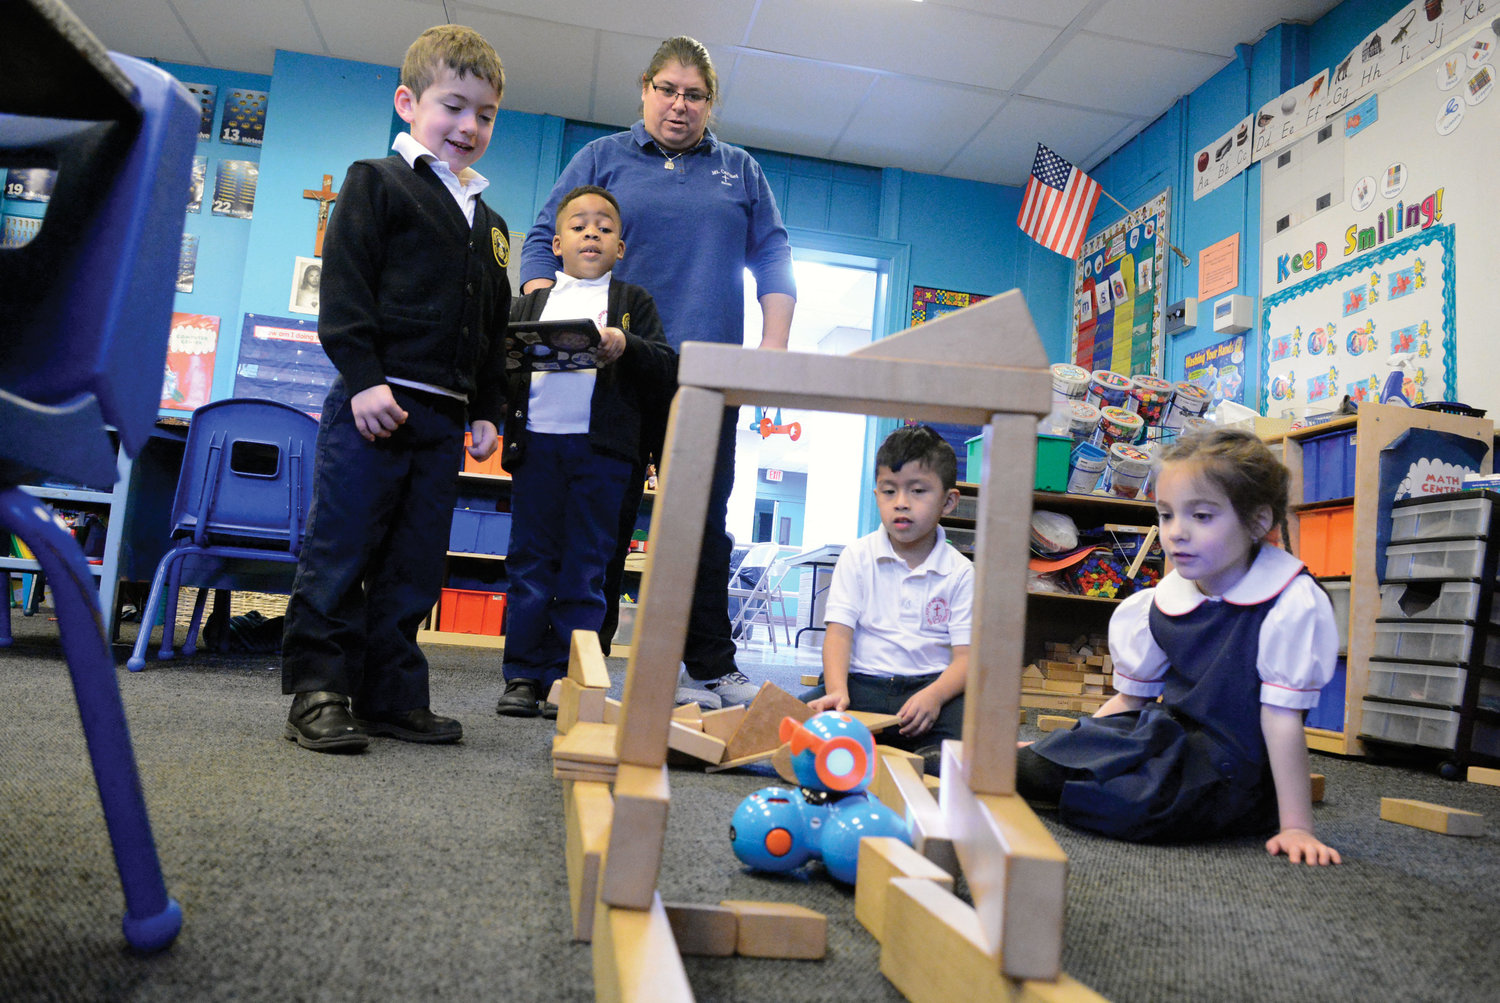 Liam Robinson, second from left, works the iPad to lead Dash the robot through an obstacle course as Charles Boyer, teacher Danielle Cavone, Chris Duchitanga and Madelyn Venuti watch during kindergarten class at Our Lady of Mount Carmel School in Elmsford Jan. 8.